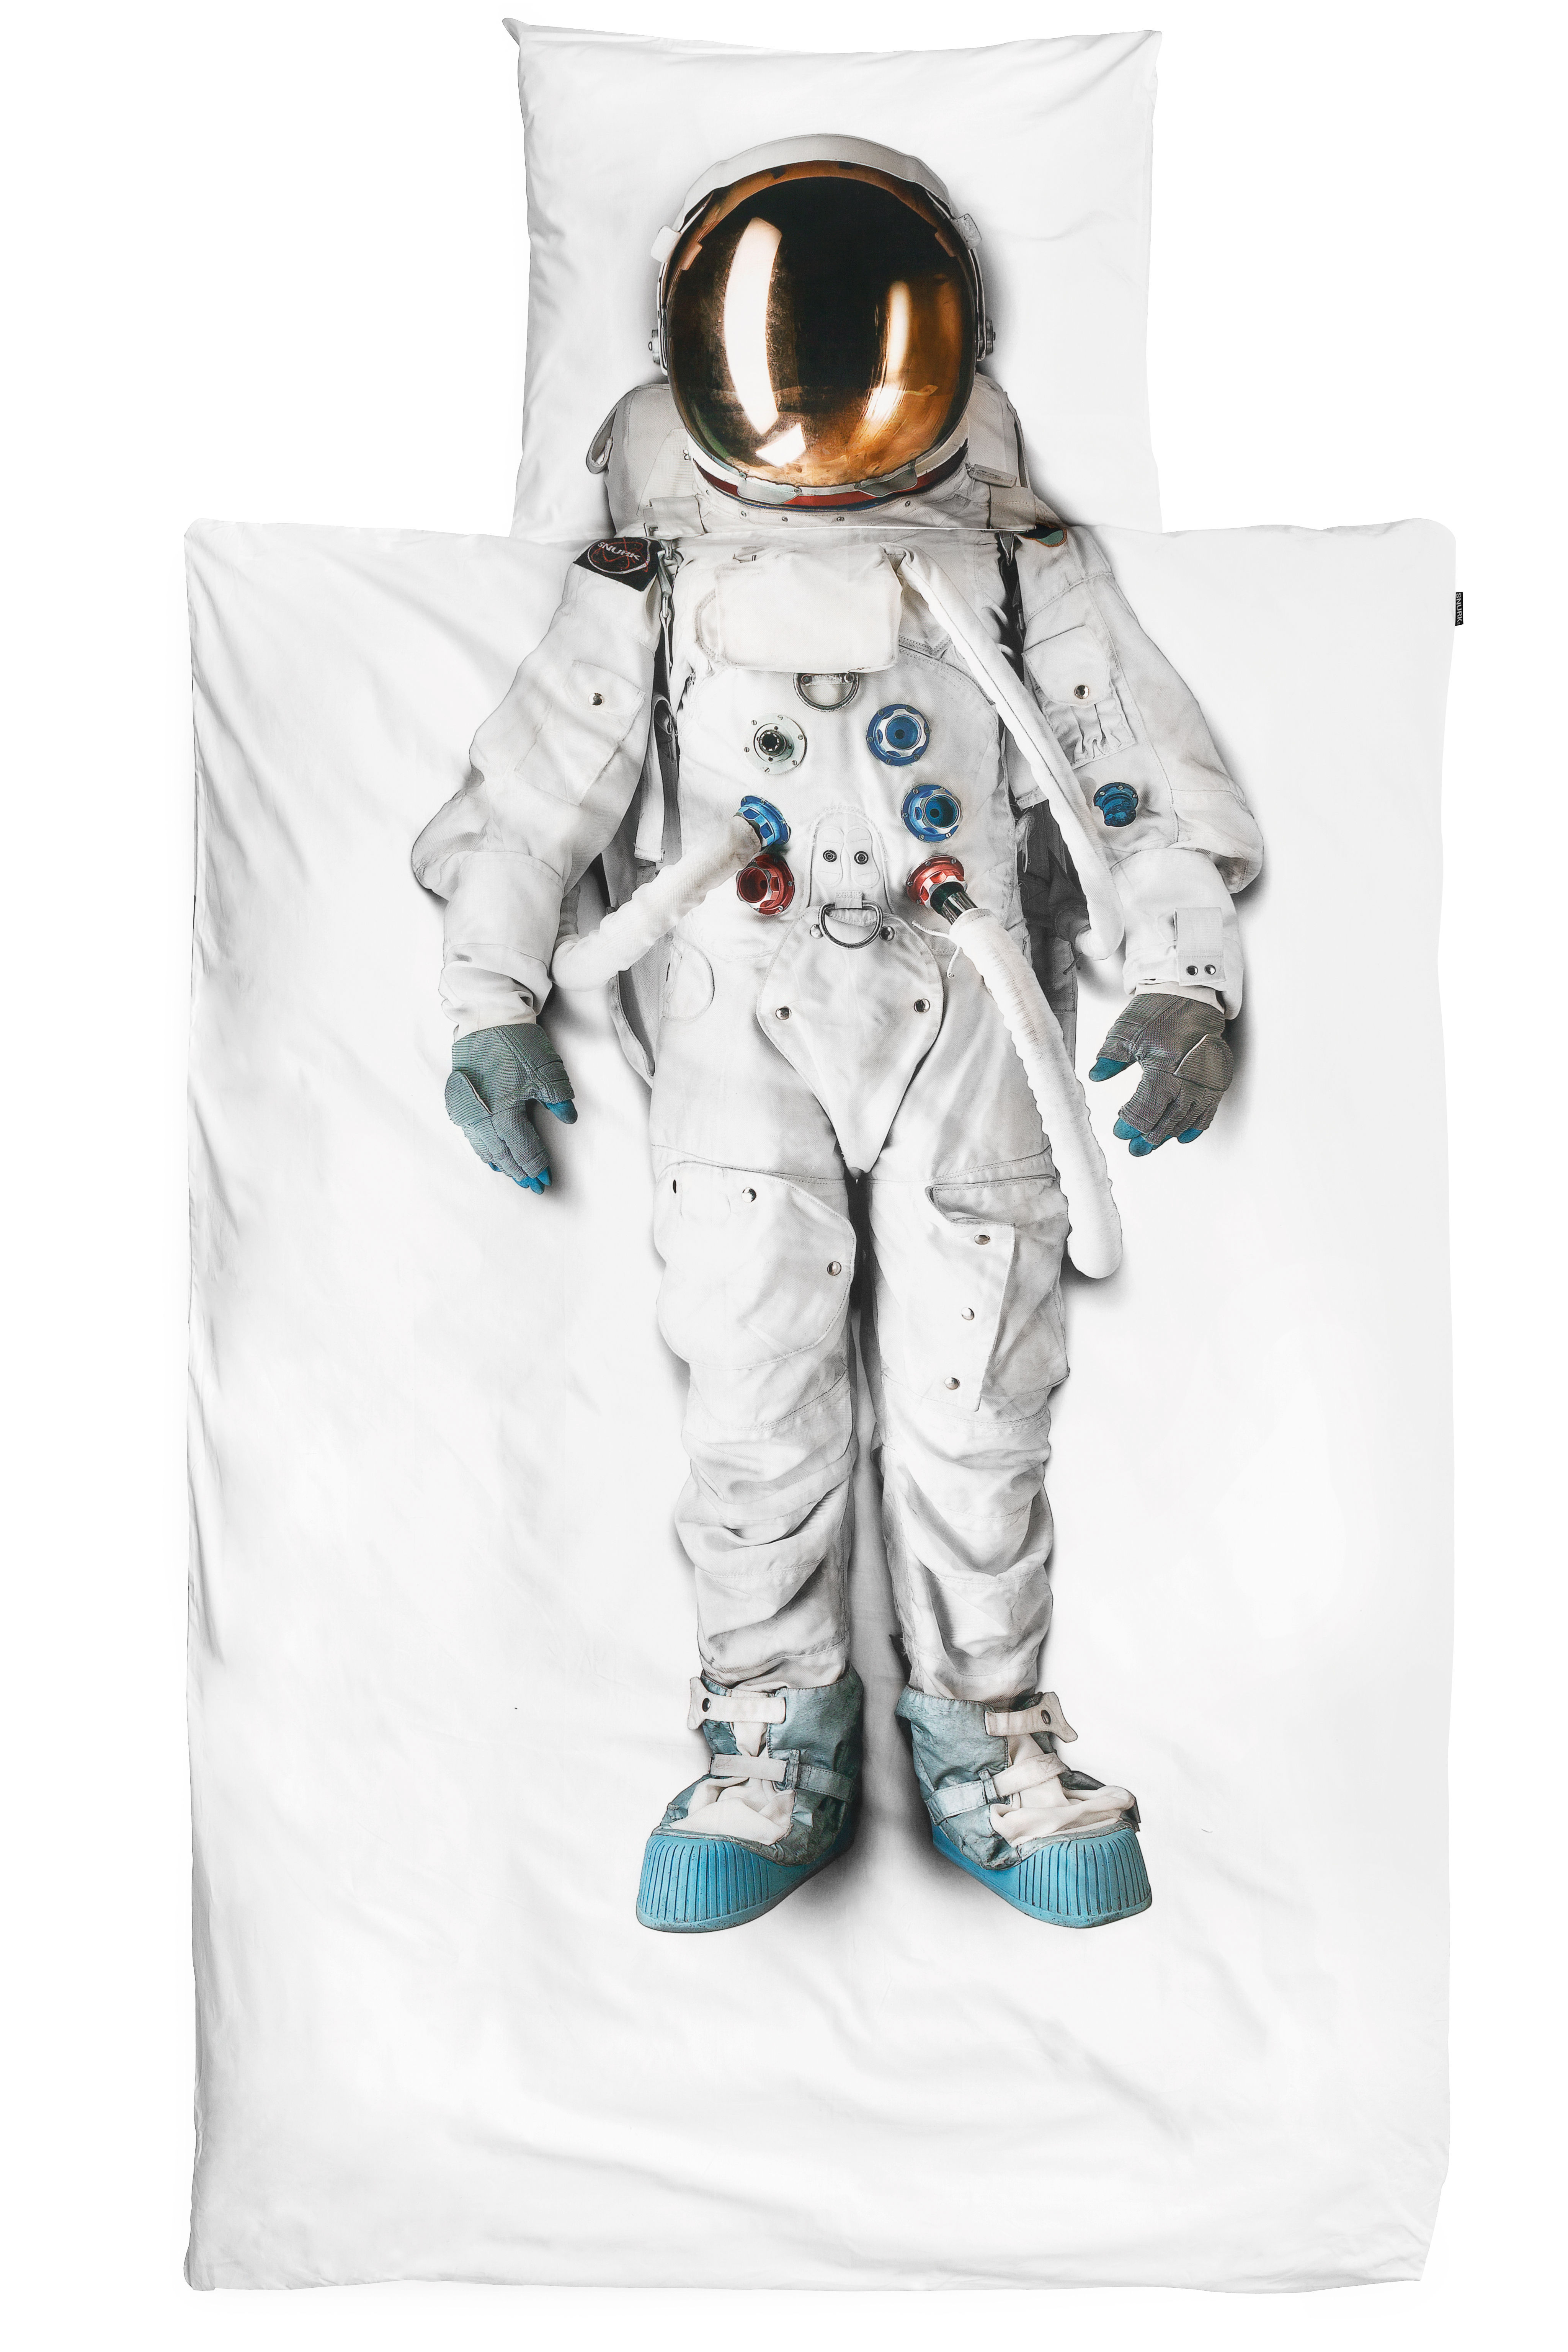 Decoration - Bedding & Bath Towels - Astronaut Bedlinen set for 1 person - 135 x 200 cm by Snurk - Astronaut - Cotton percale